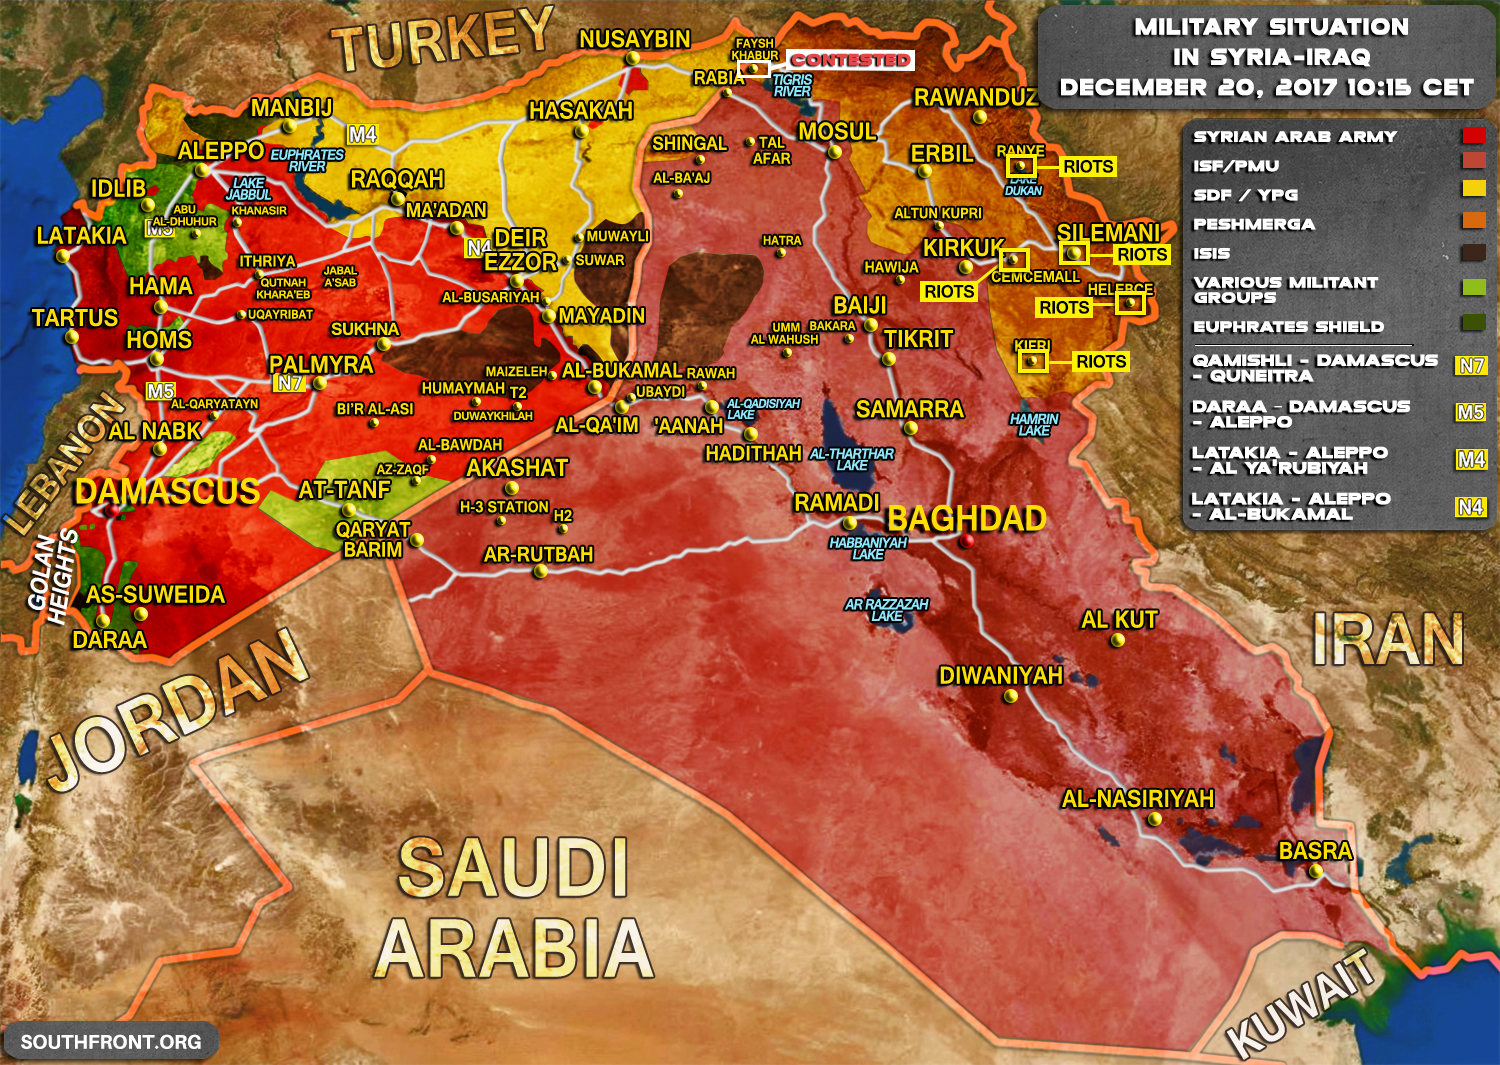 Military Situation In Syria And Iraq On December 20, 2017 ...